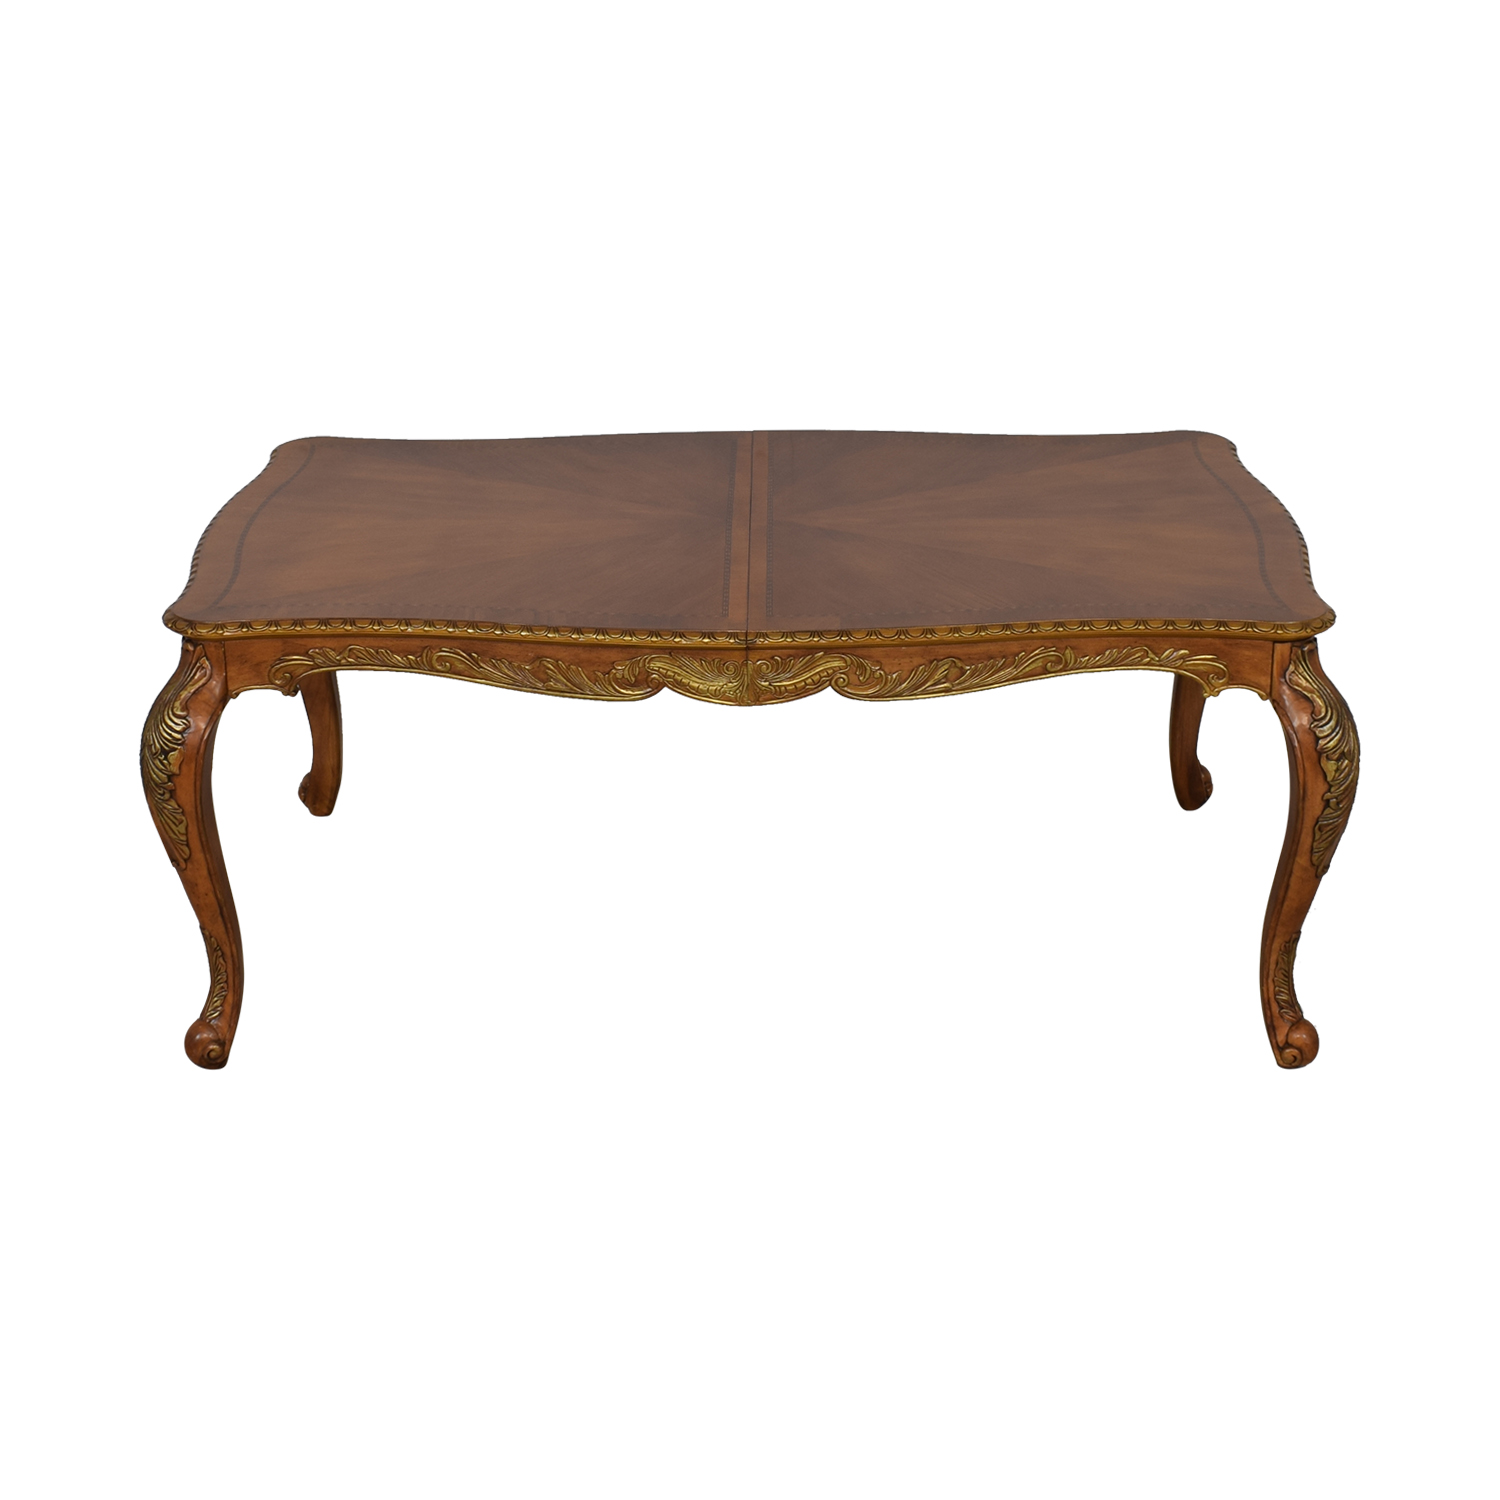 Raymour & Flanigan Raymour & Flanigan Extendable Dining Table brown